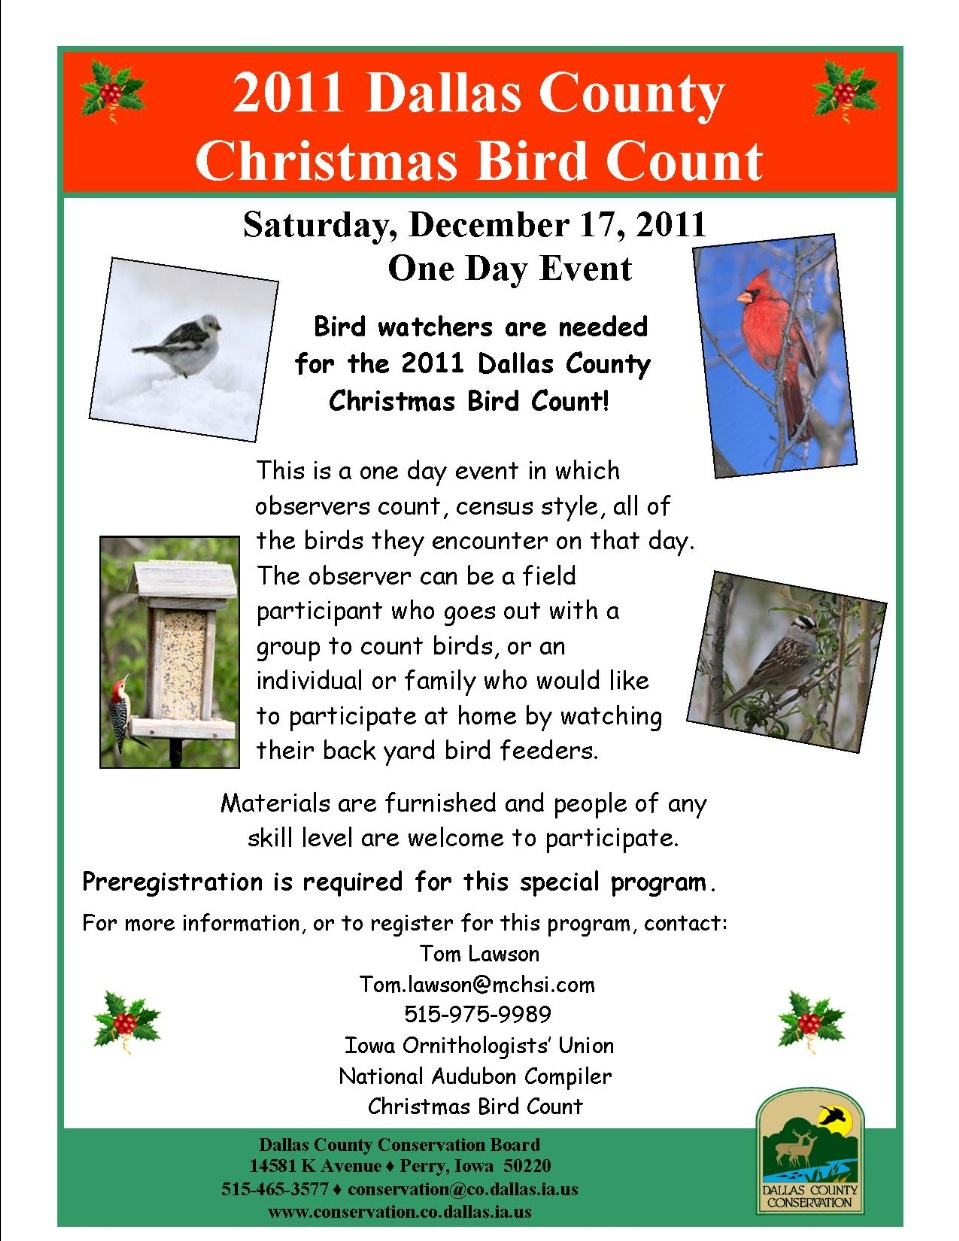 2011 Christmas Bird Count Flyer